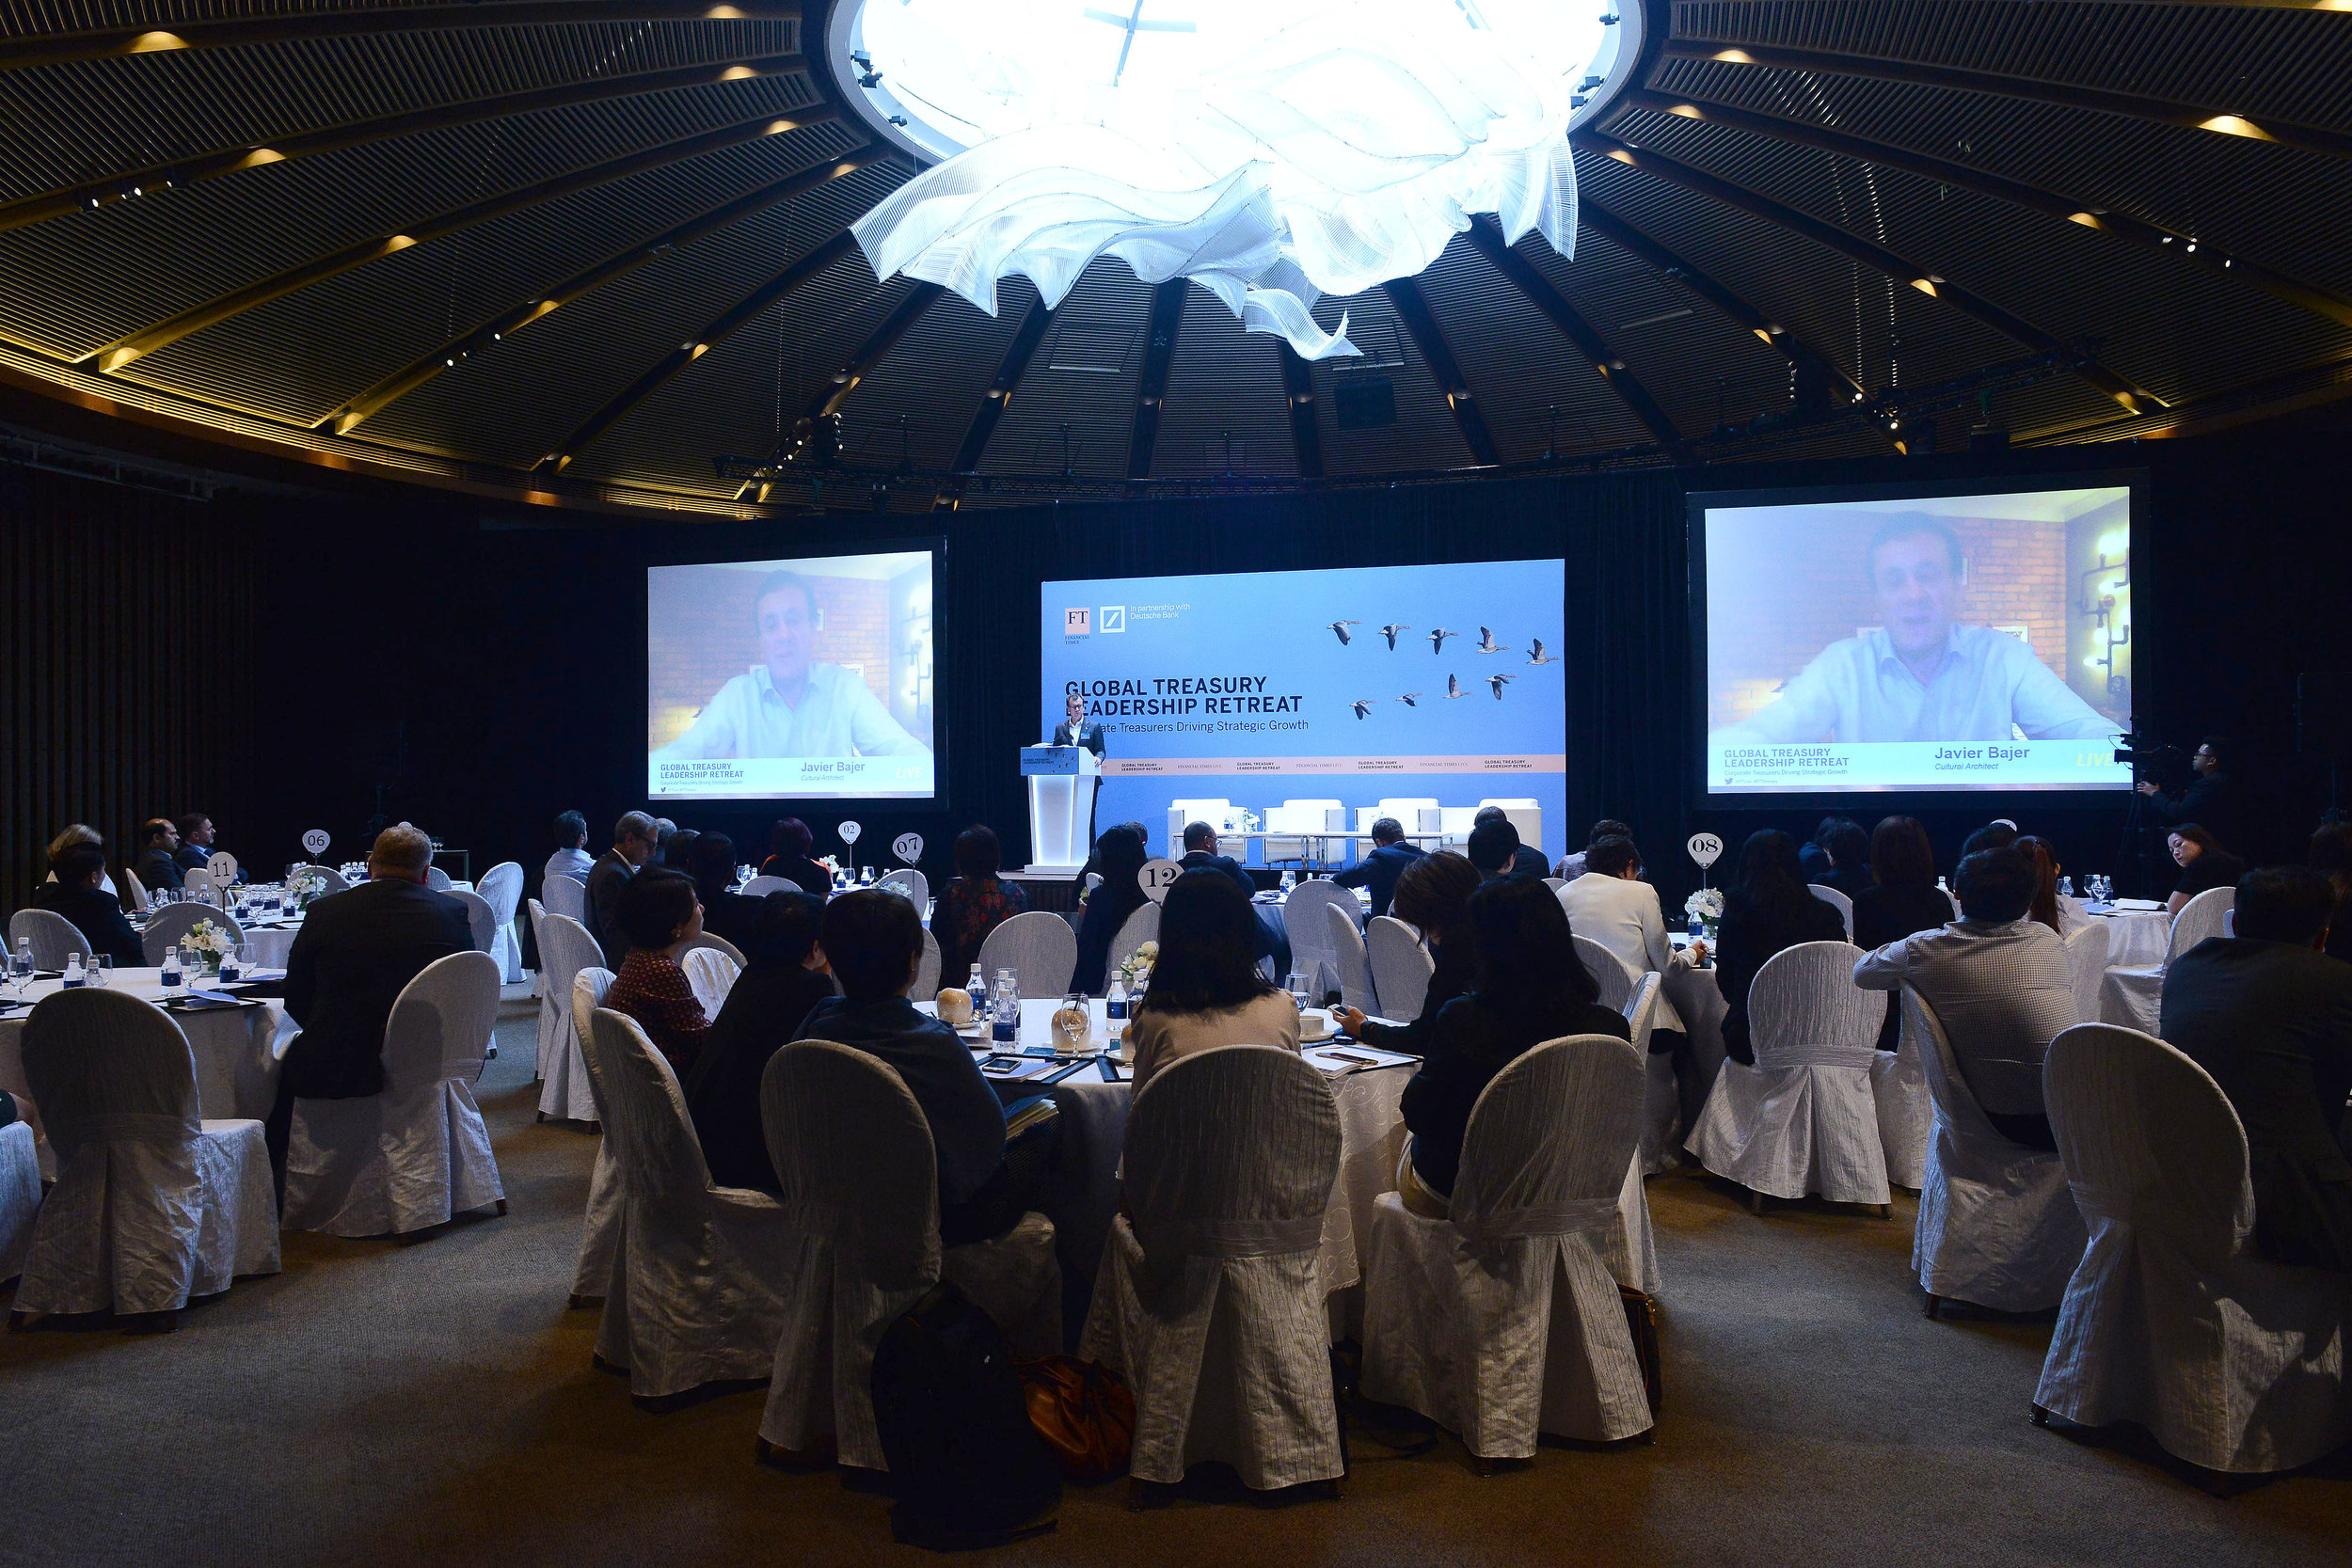 Video call to FT Global Treasury Retreat in Singapore, to discuss how to cultivate leadership to create change (December '16)